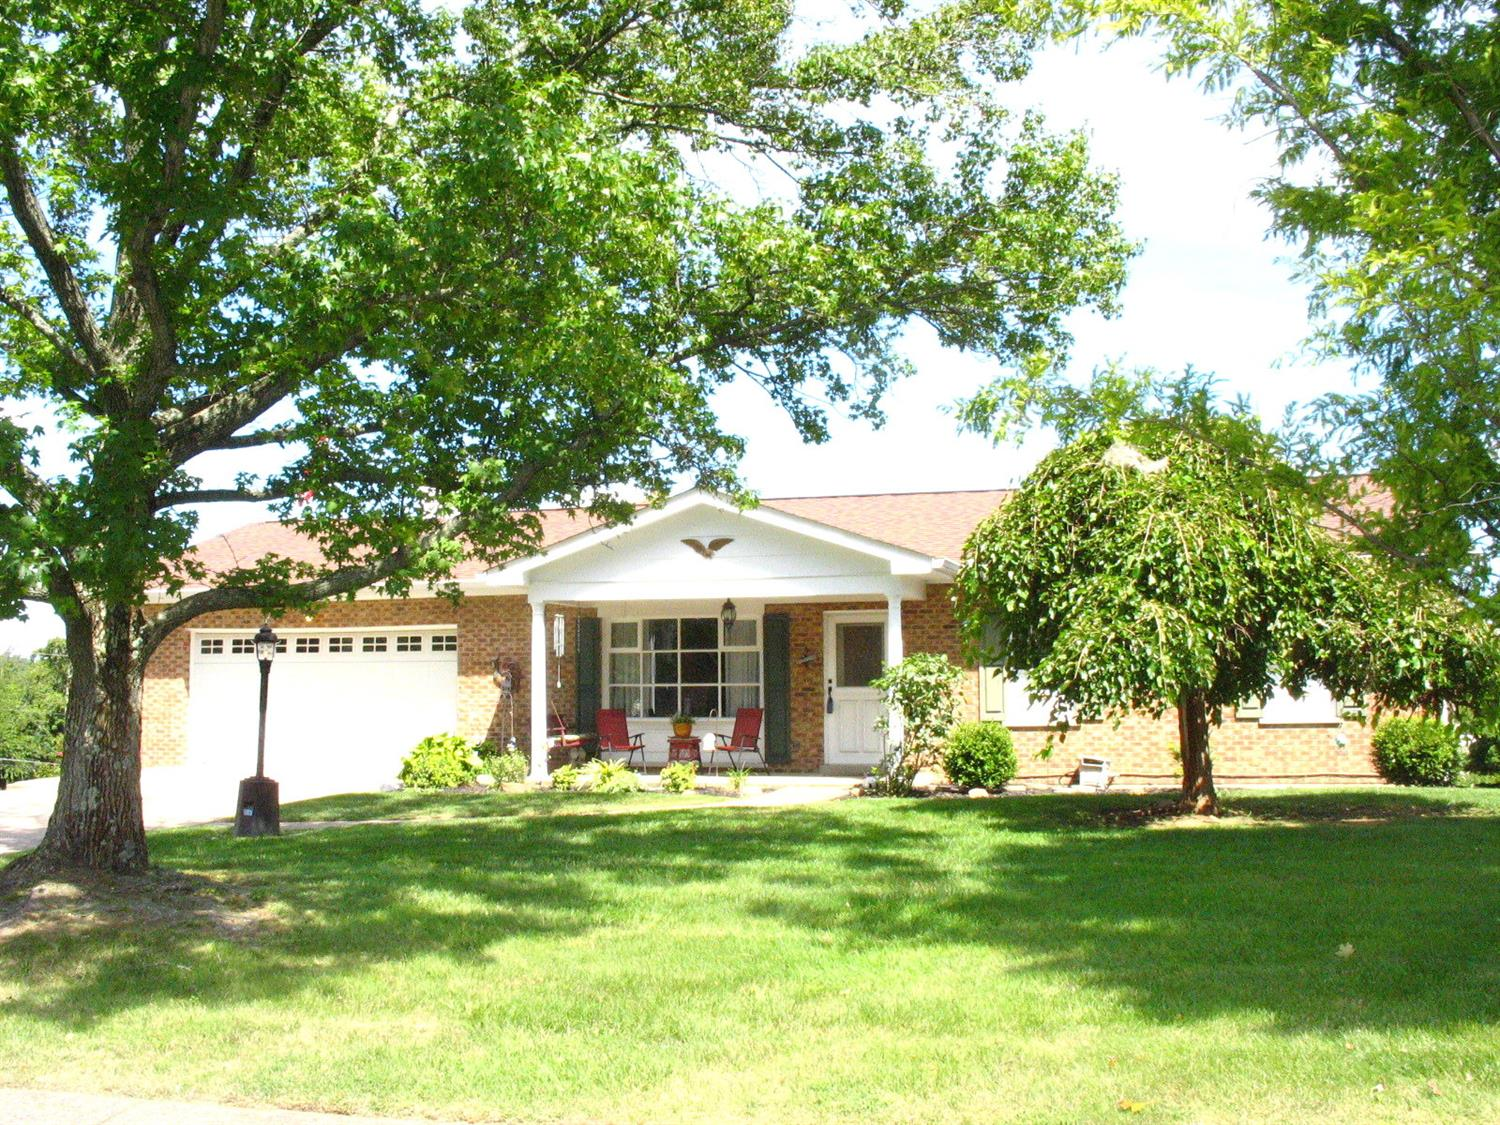 11977 Cadillac Dr, Independence, KY 41051